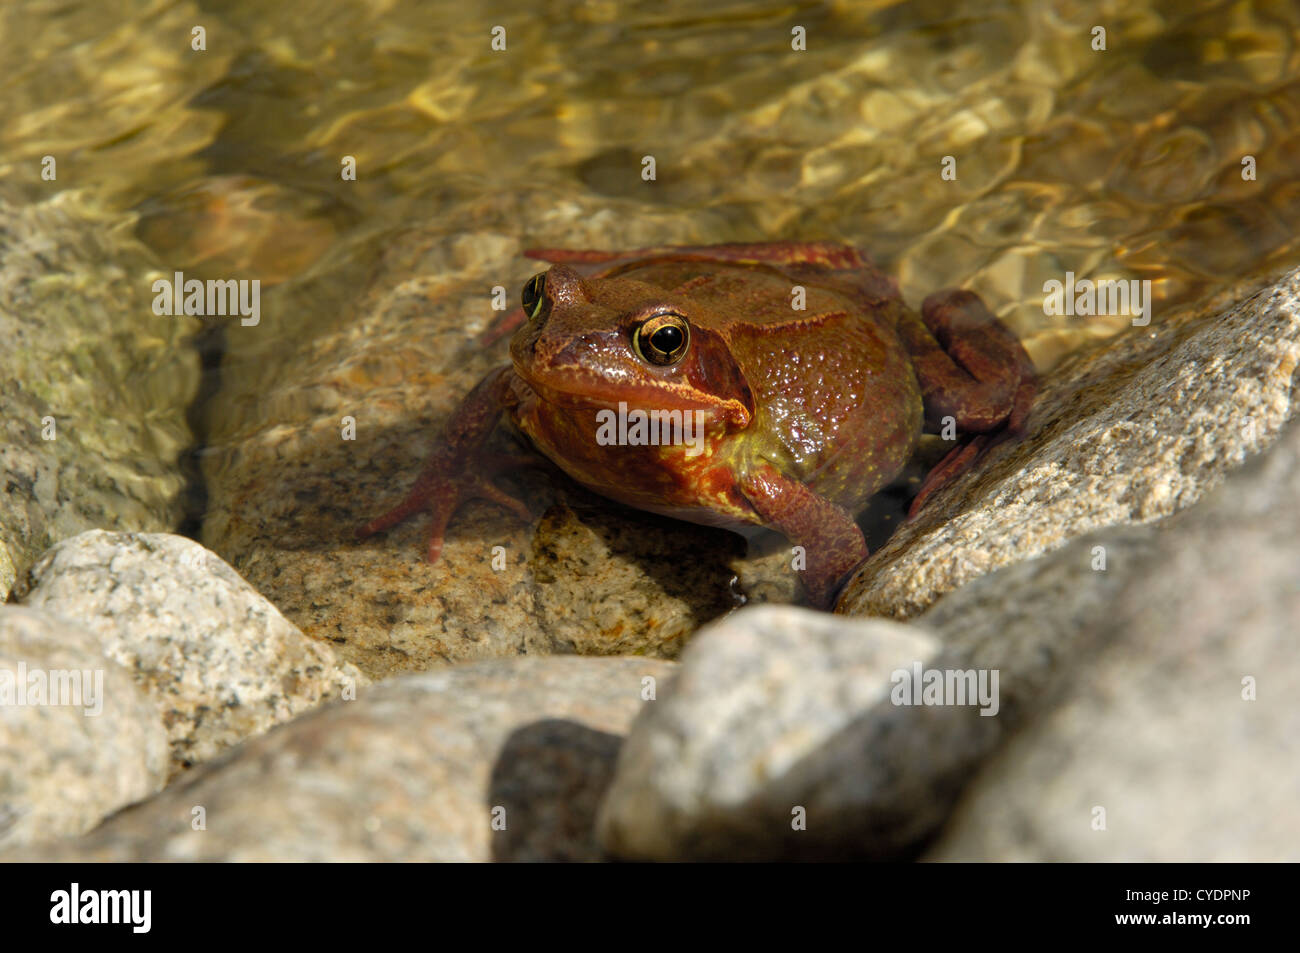 Common Frog, Rana temporaria in a pond, unusual red colouration, Dumfries and Galloway, Scotland - Stock Image